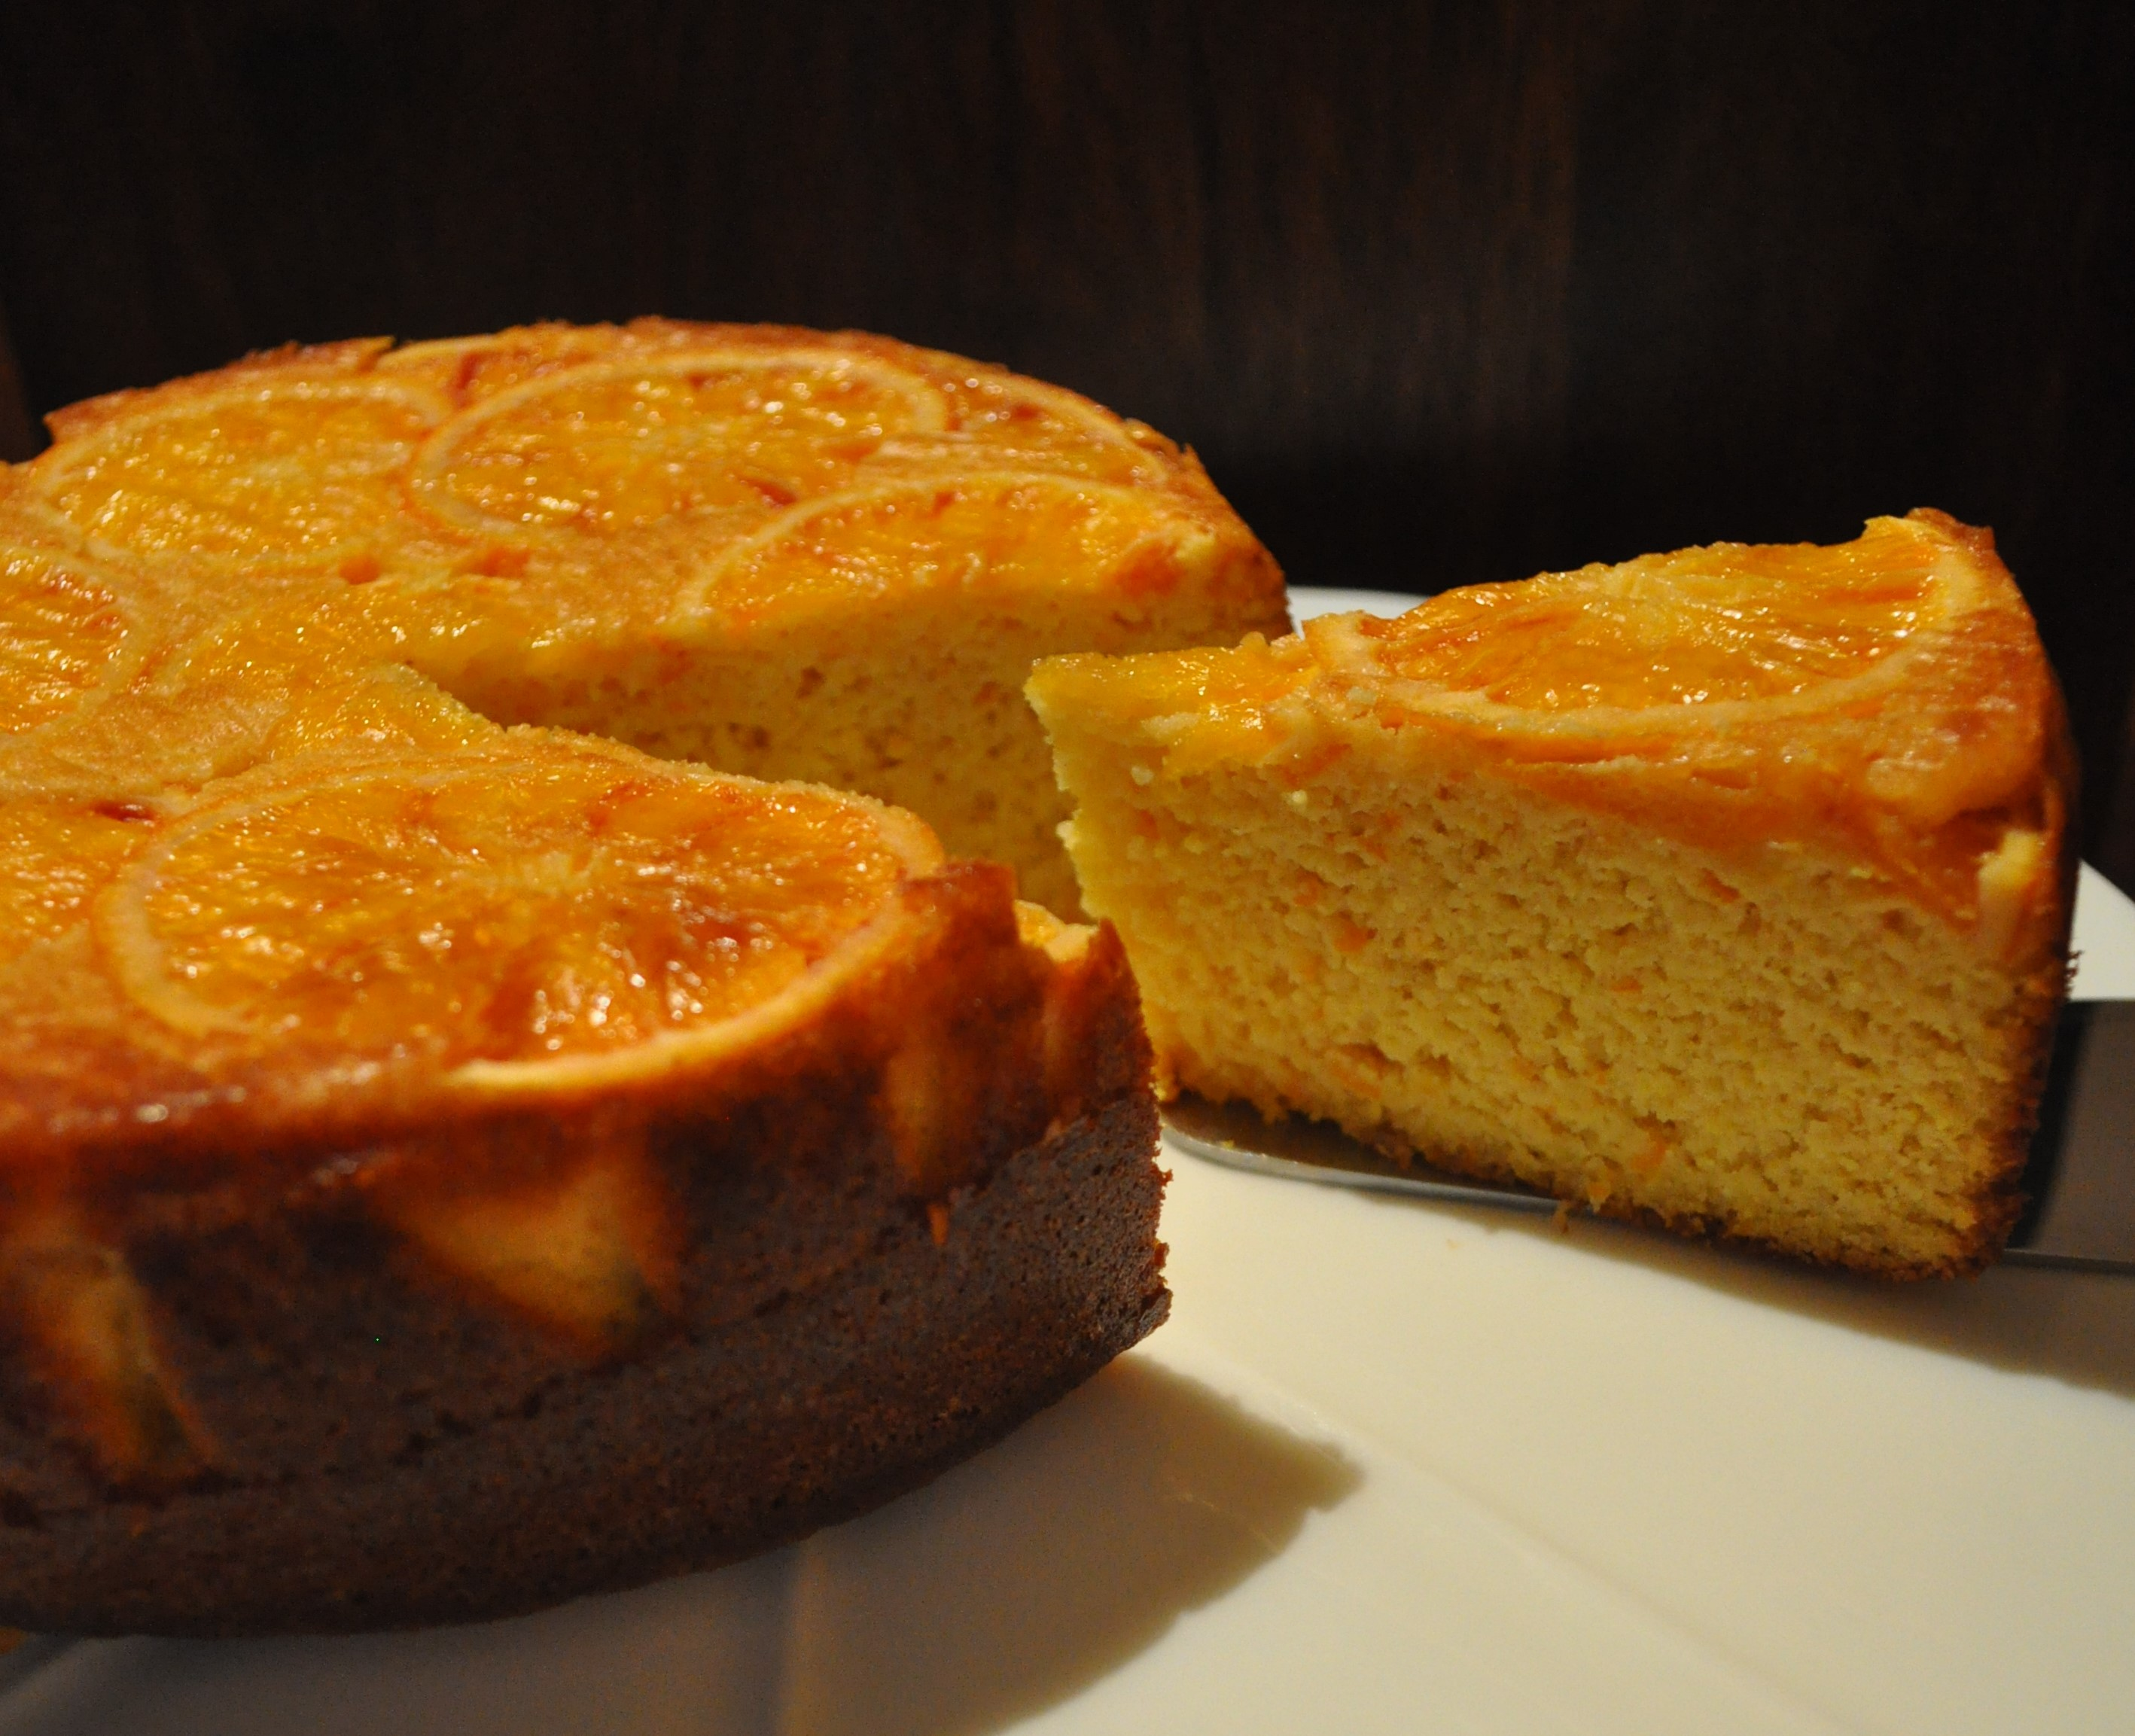 Orange Cake Recipe With Whole Oranges